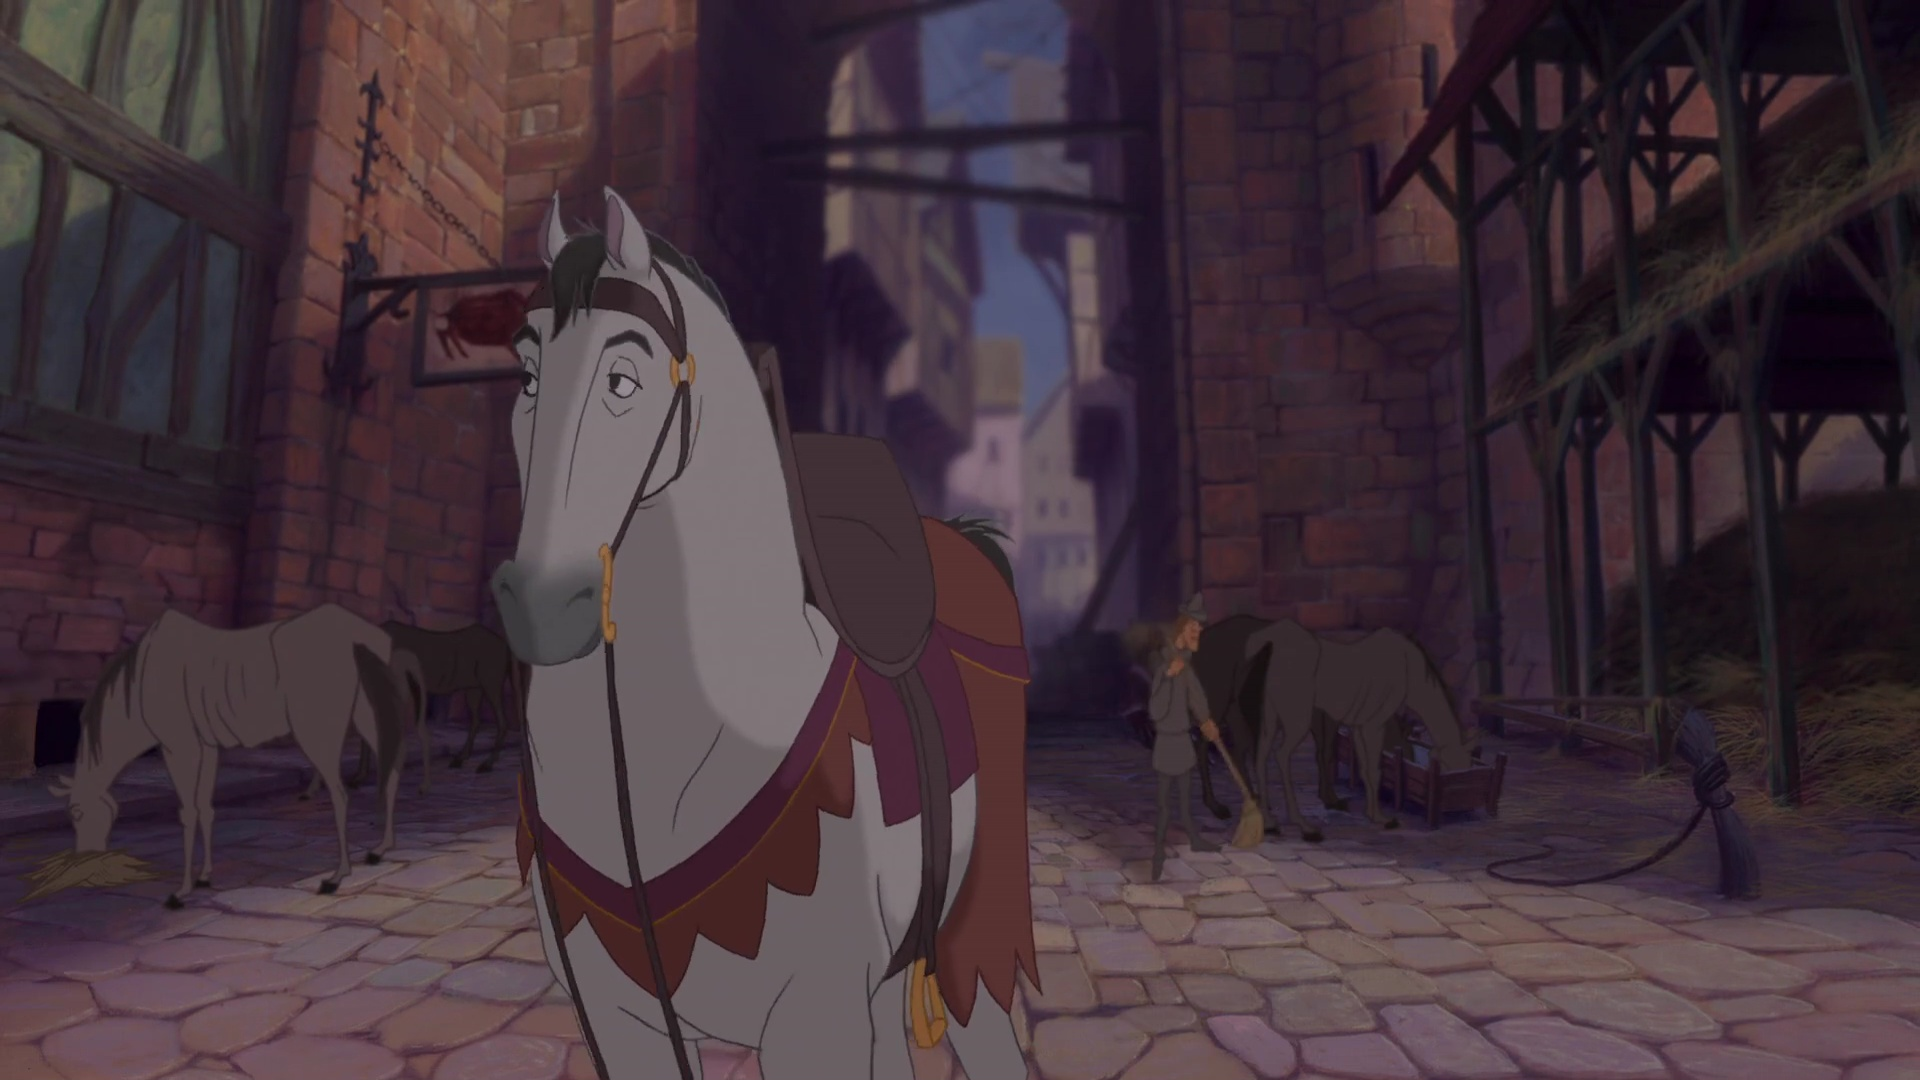 achilles personnage bossu notre-dame disney character hunchback